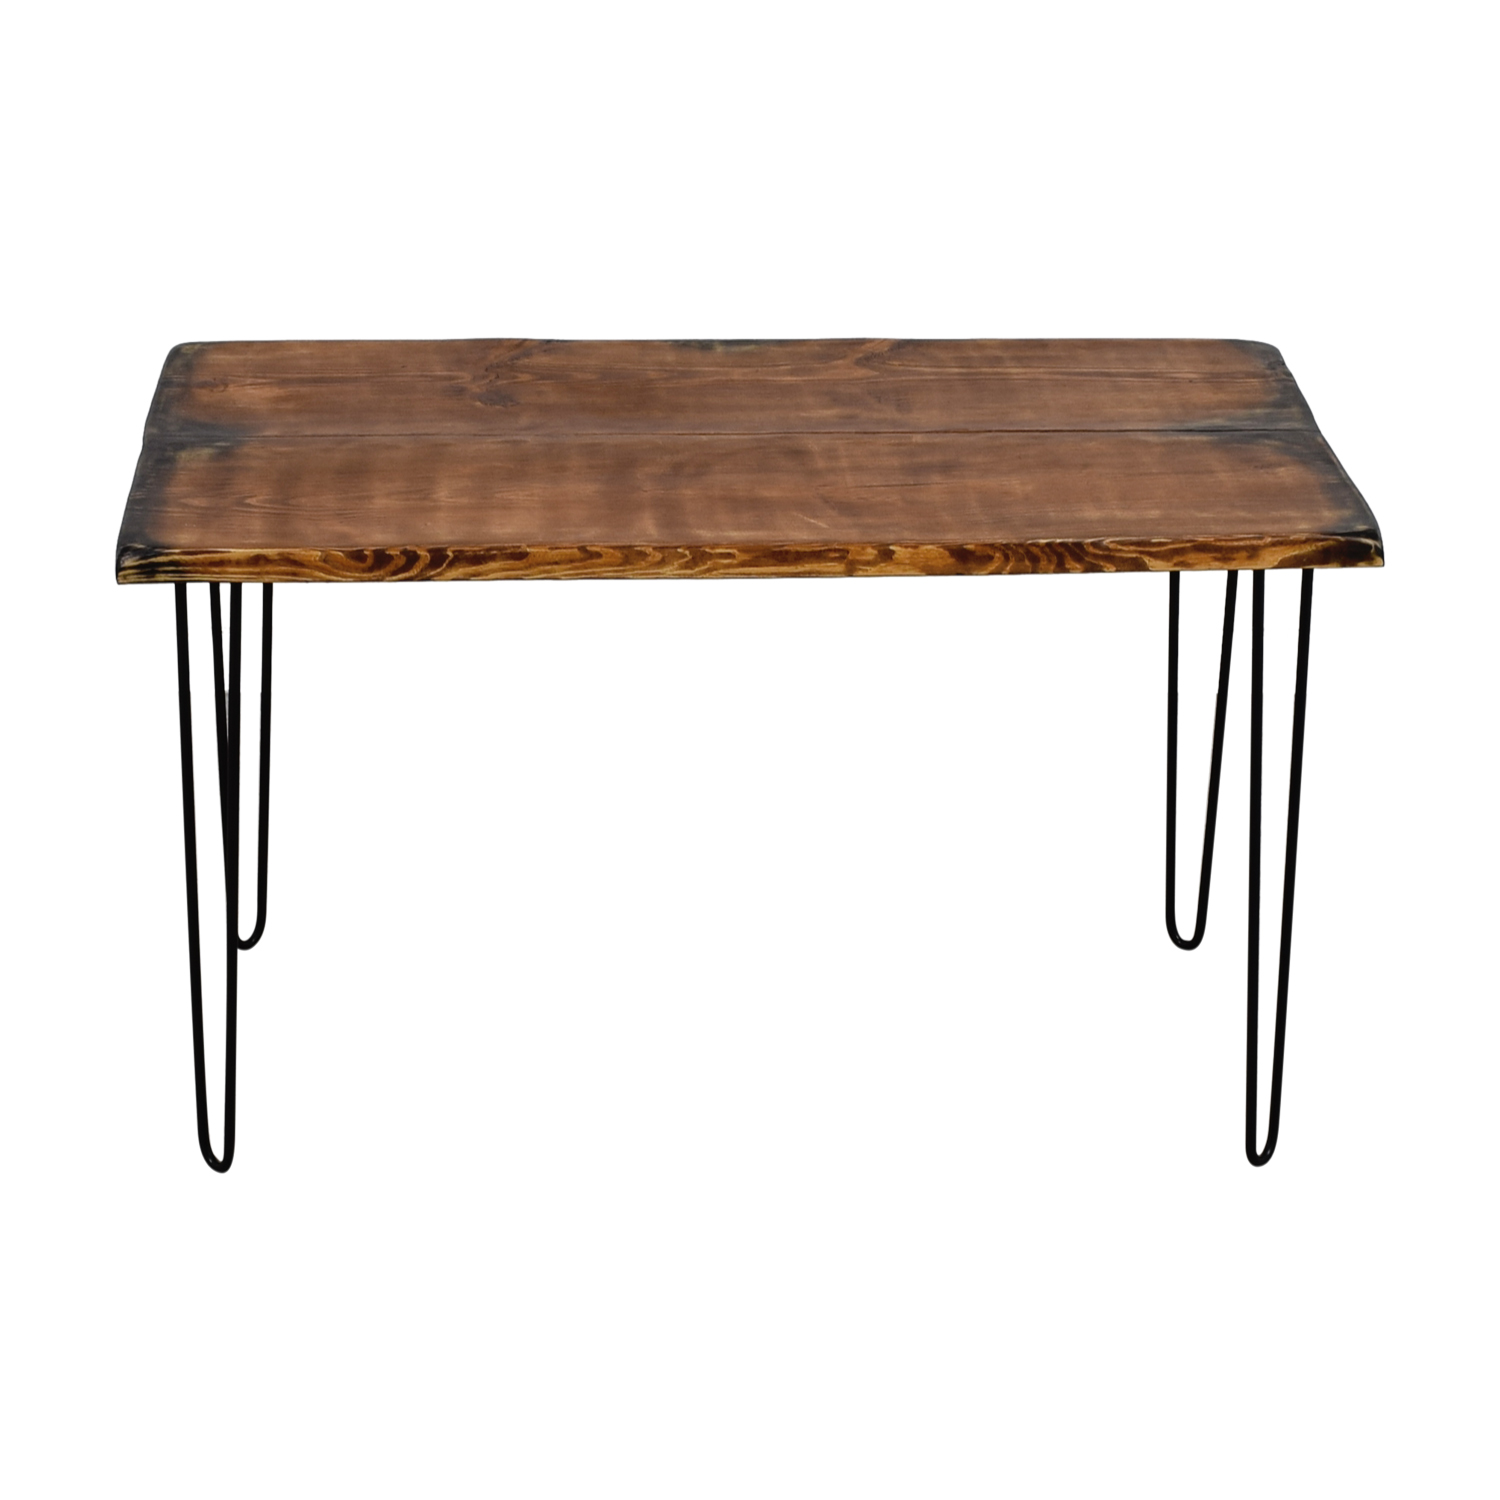 Umbuzo Umbuzo Rustic Shou Sufi Ban Handcrafted Wood Desk with Hairpin Legs on sale